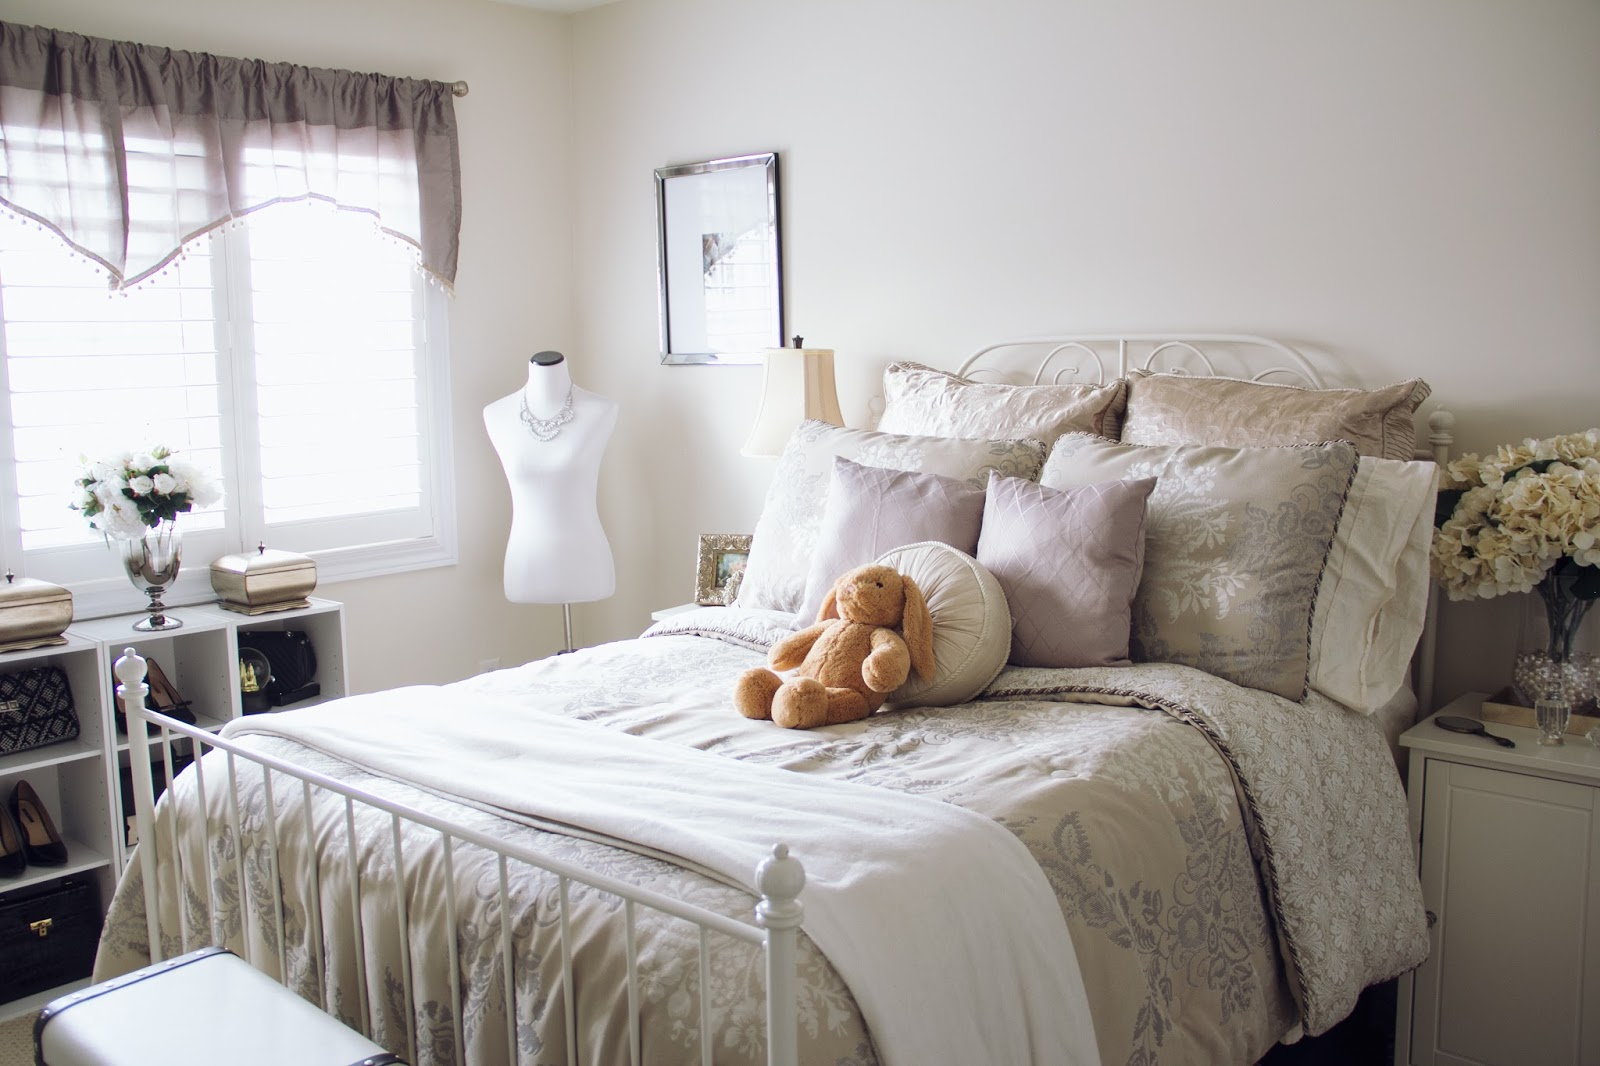 Home decor is my second love  its like fashion but for your room  I am  constantly moving things around my room and buying some new pieces to  decorate with. New Bedroom Details   Carolina Pinglo